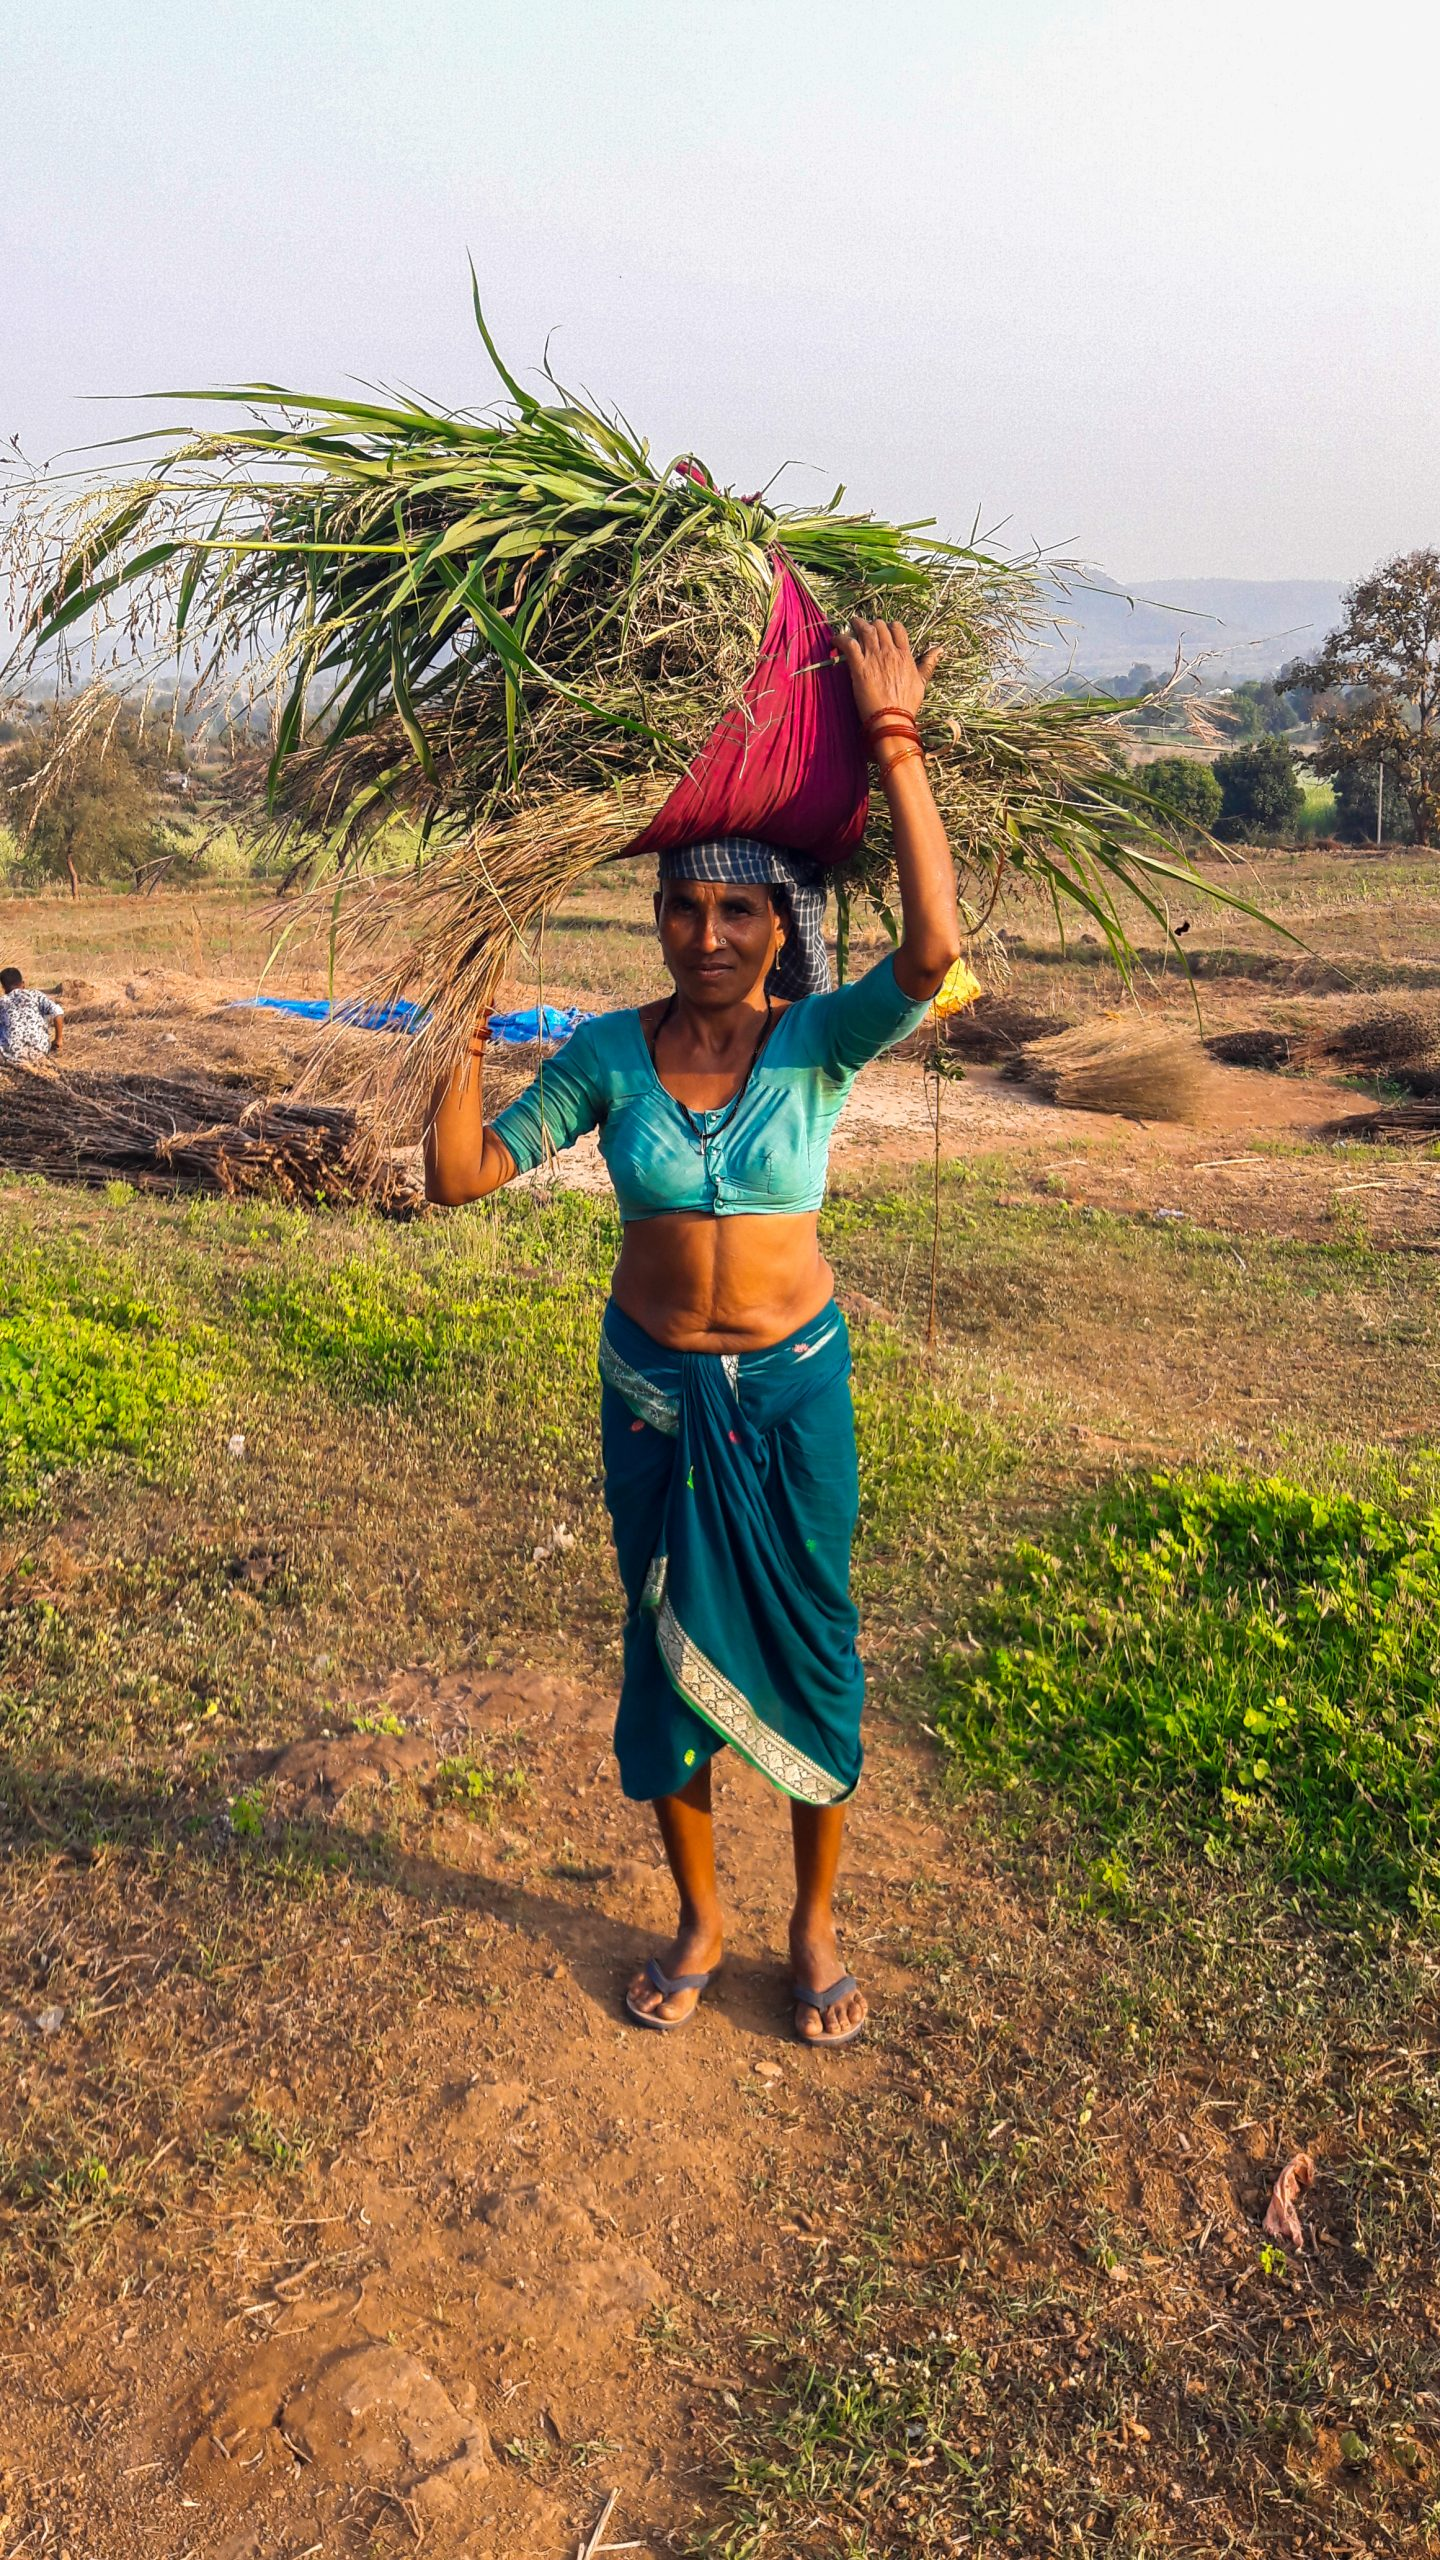 A village woman carrying grass for animals